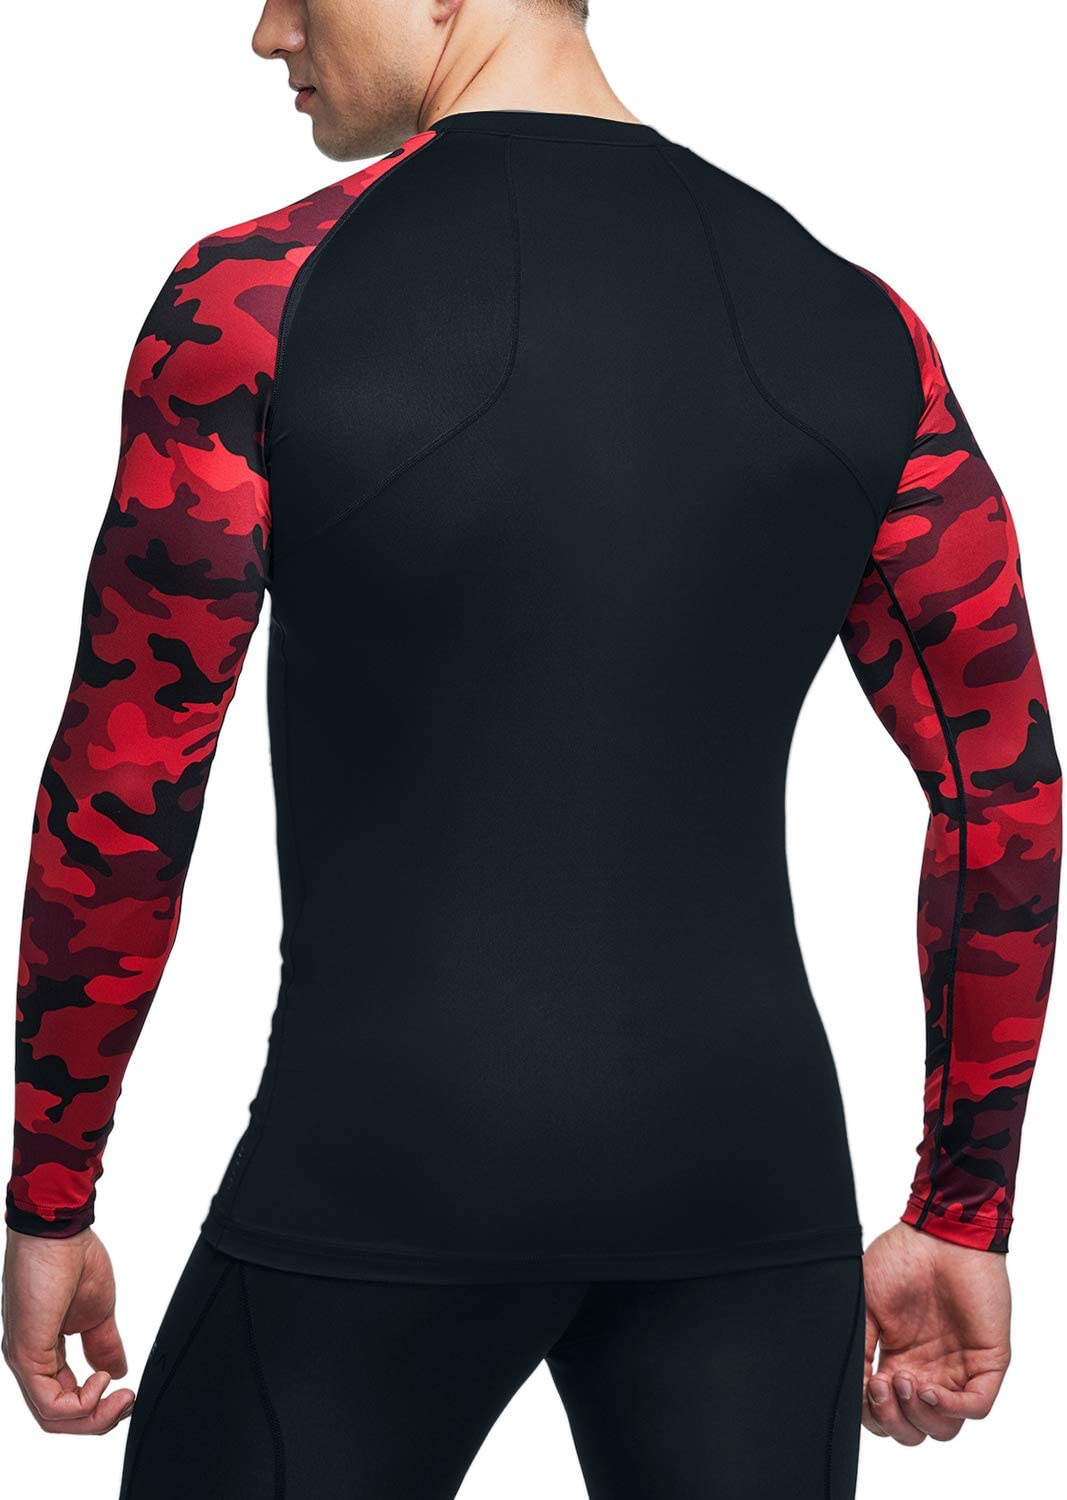 ATHLIO Mens Cool Dry Fit Long Sleeve Compression Shirts Active Sports Base Layer T-Shirt Athletic Workout Shirt